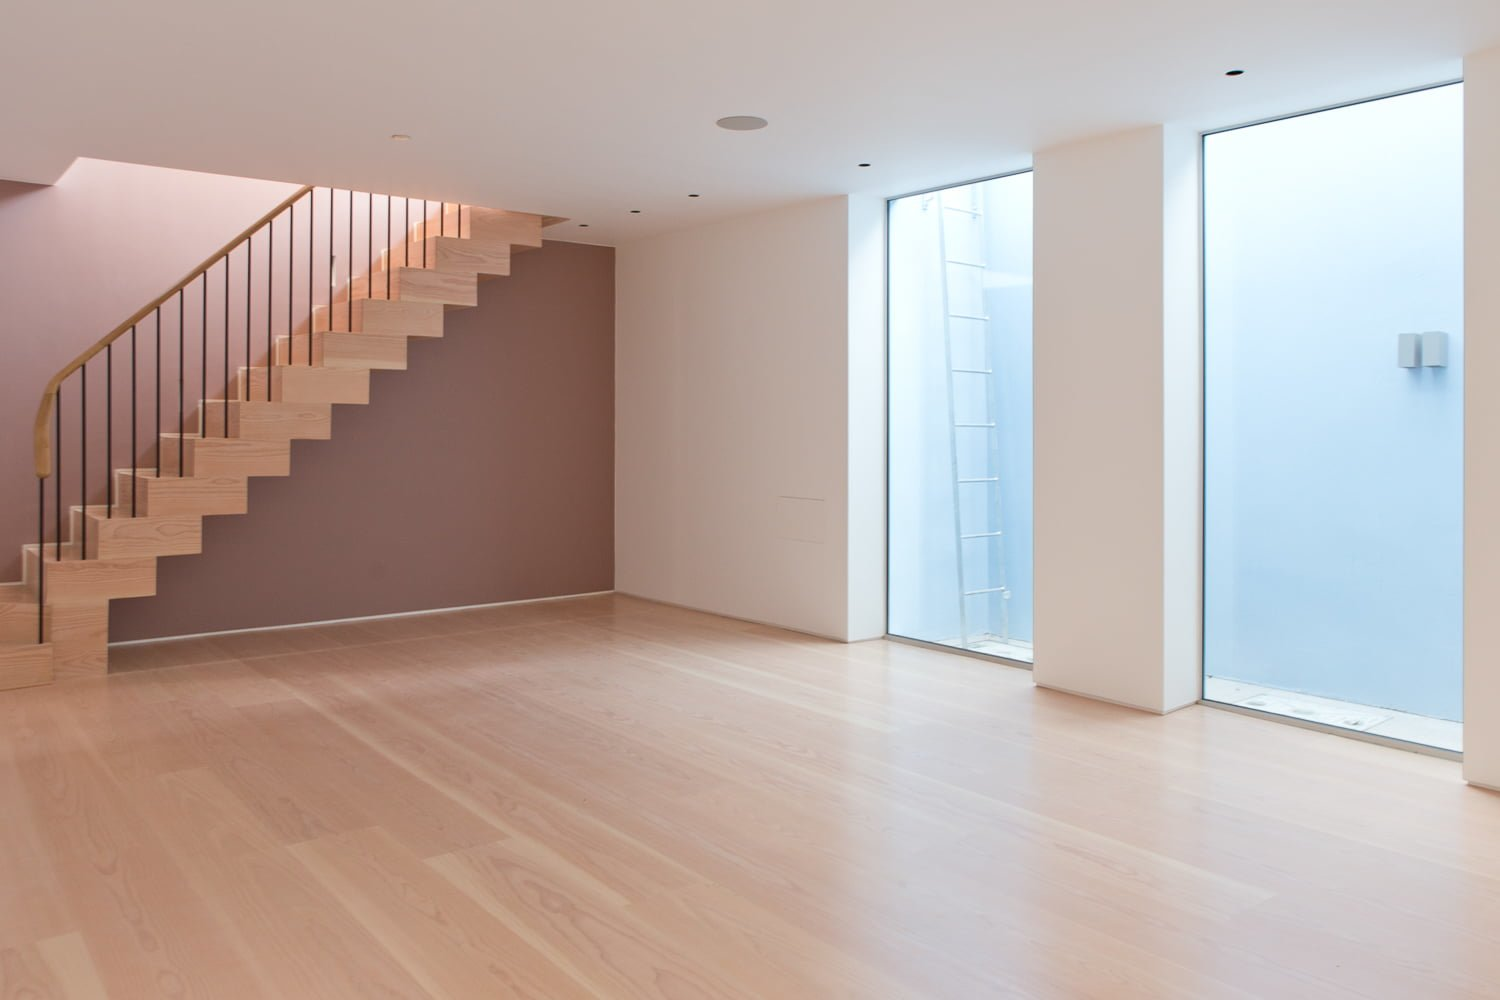 Airy interior with stairs and douglas fir flooring